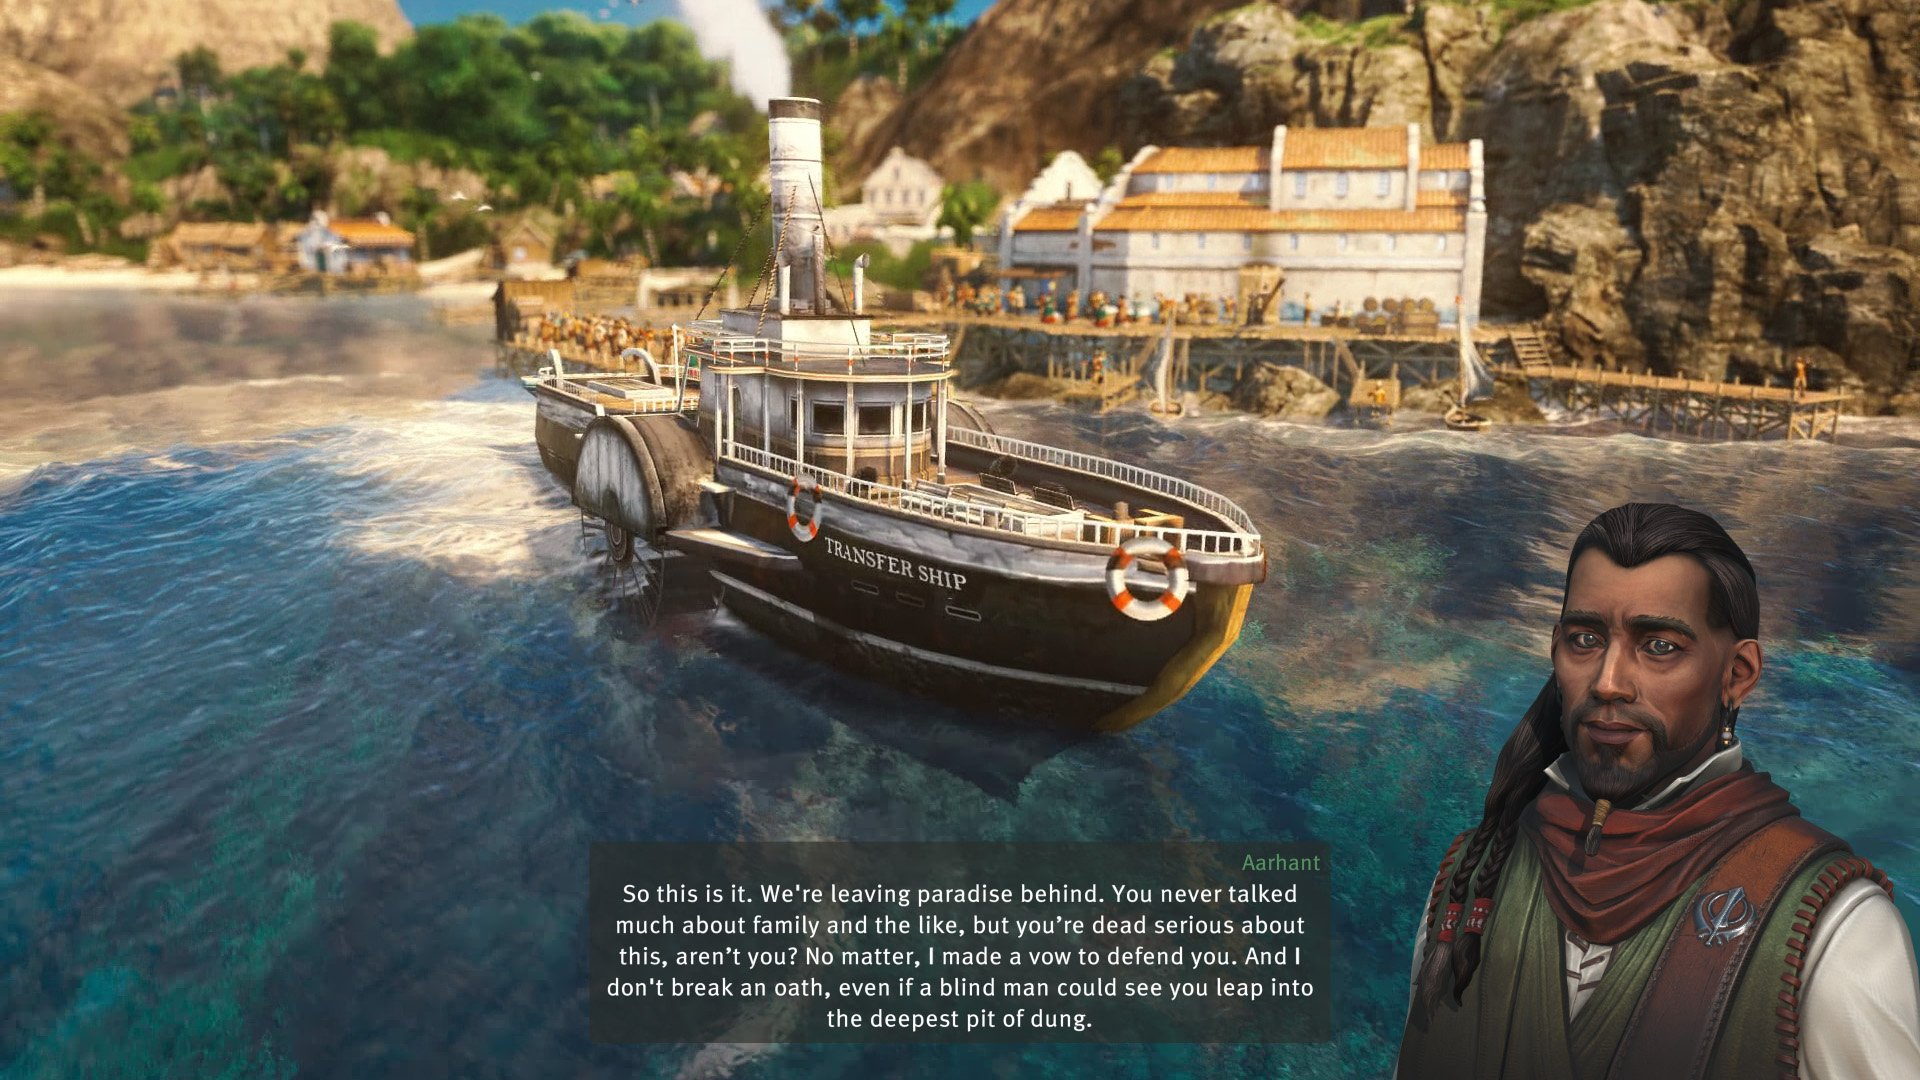 The campaign of Anno 1800 takes you on a story of retribution, as you fight to clear your father's name and take down those who framed him.